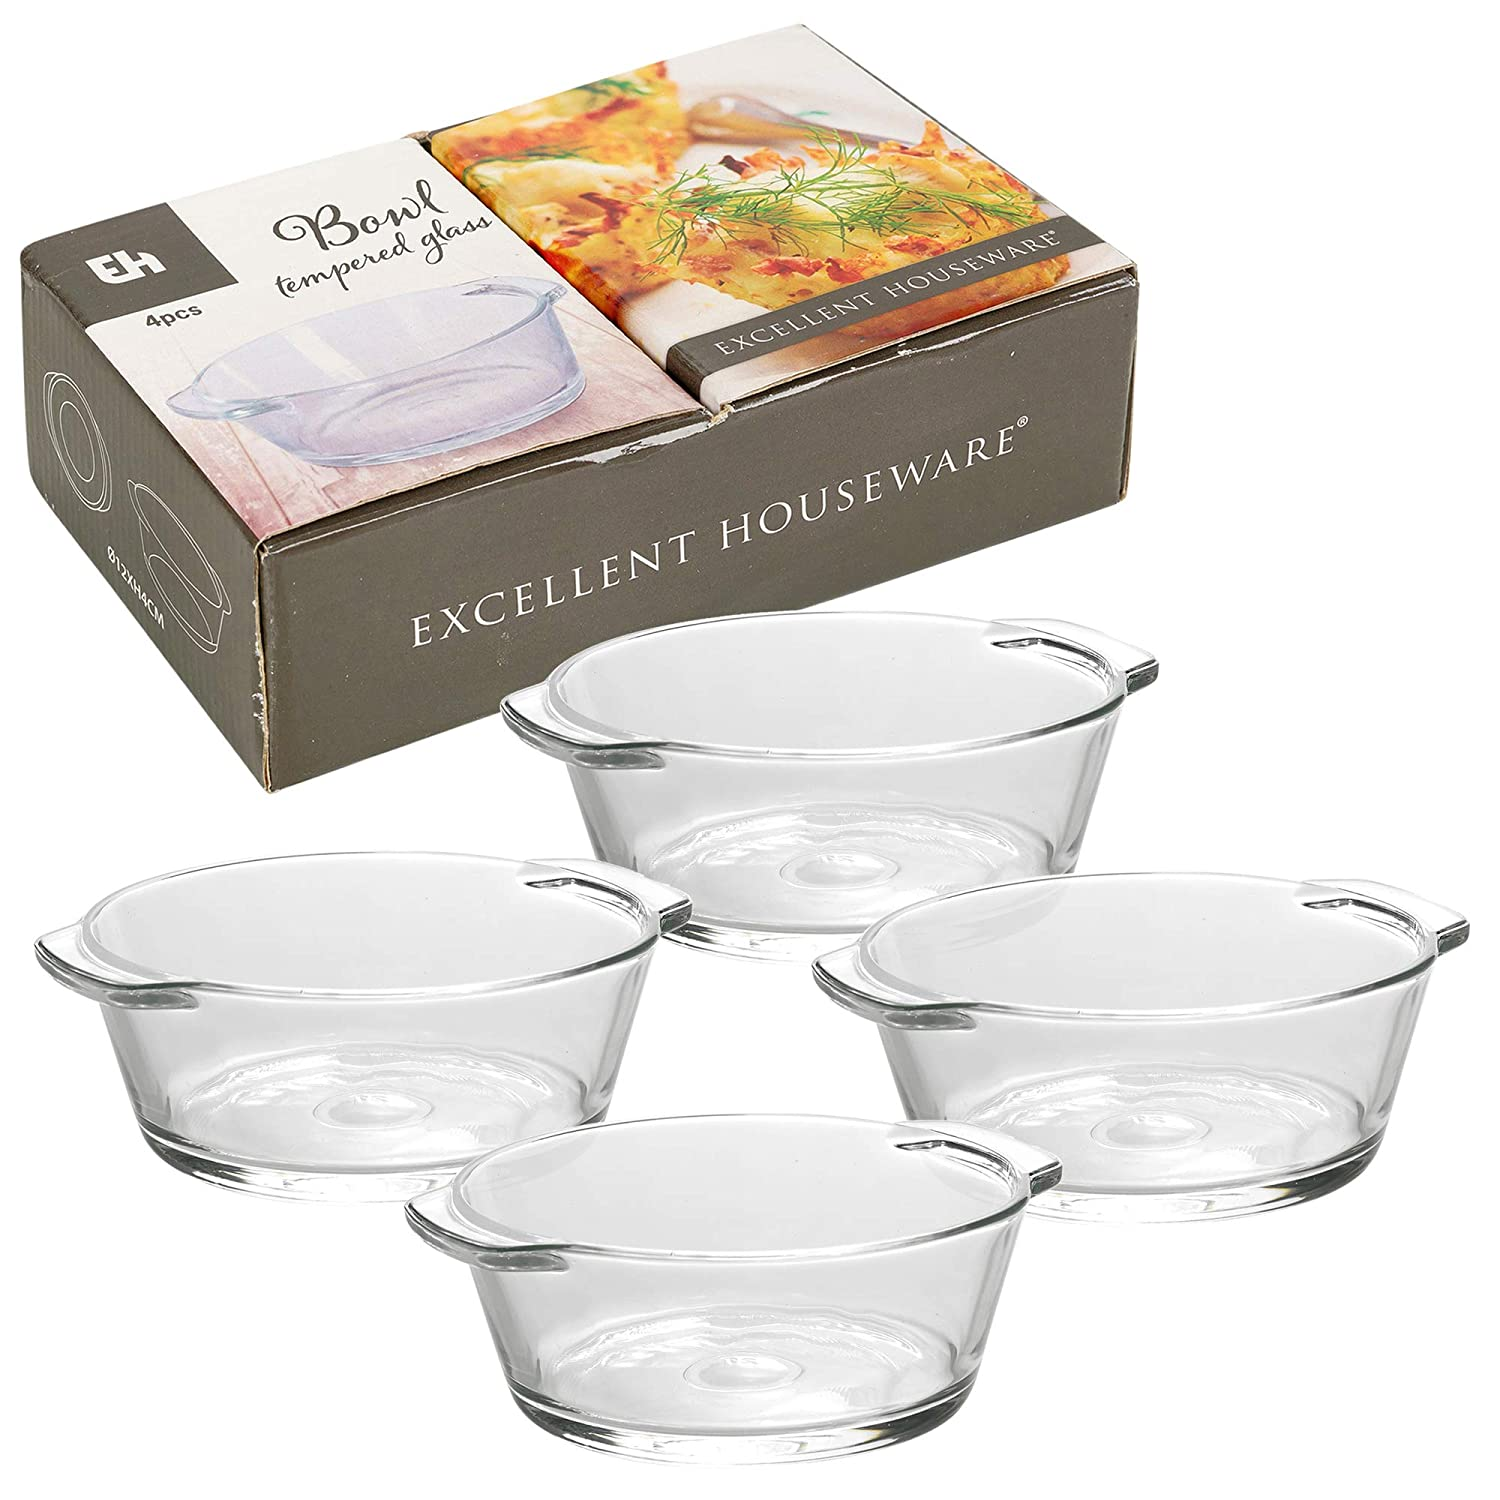 4 Pcs Tempered Glass Bowl Set for Cooking & Baking in Ovens & Microwaves